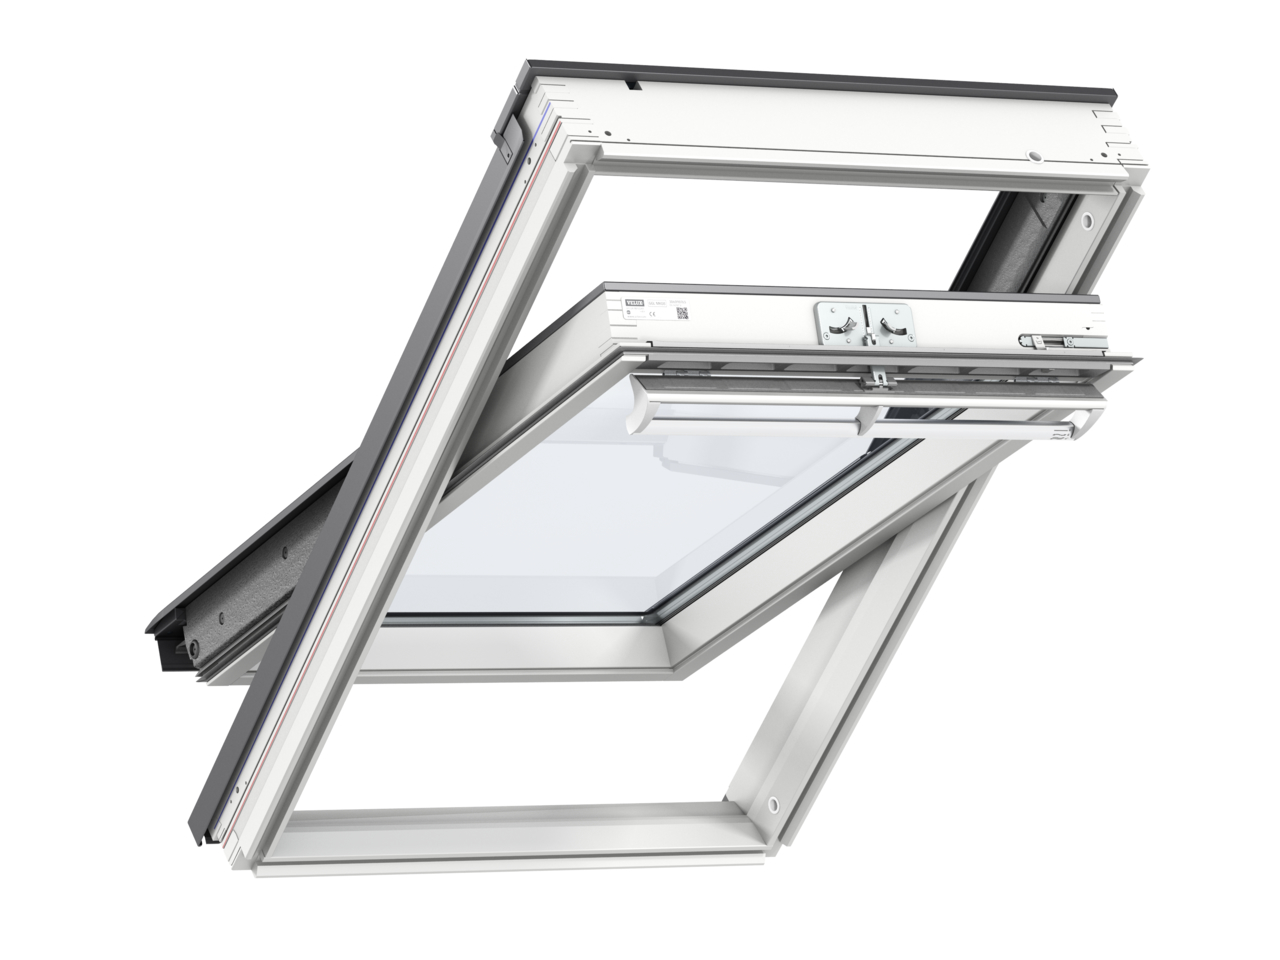 Velux GGL PK10 940 x 1600mm Centre Pivot 70QPane Roof Window - White Painted